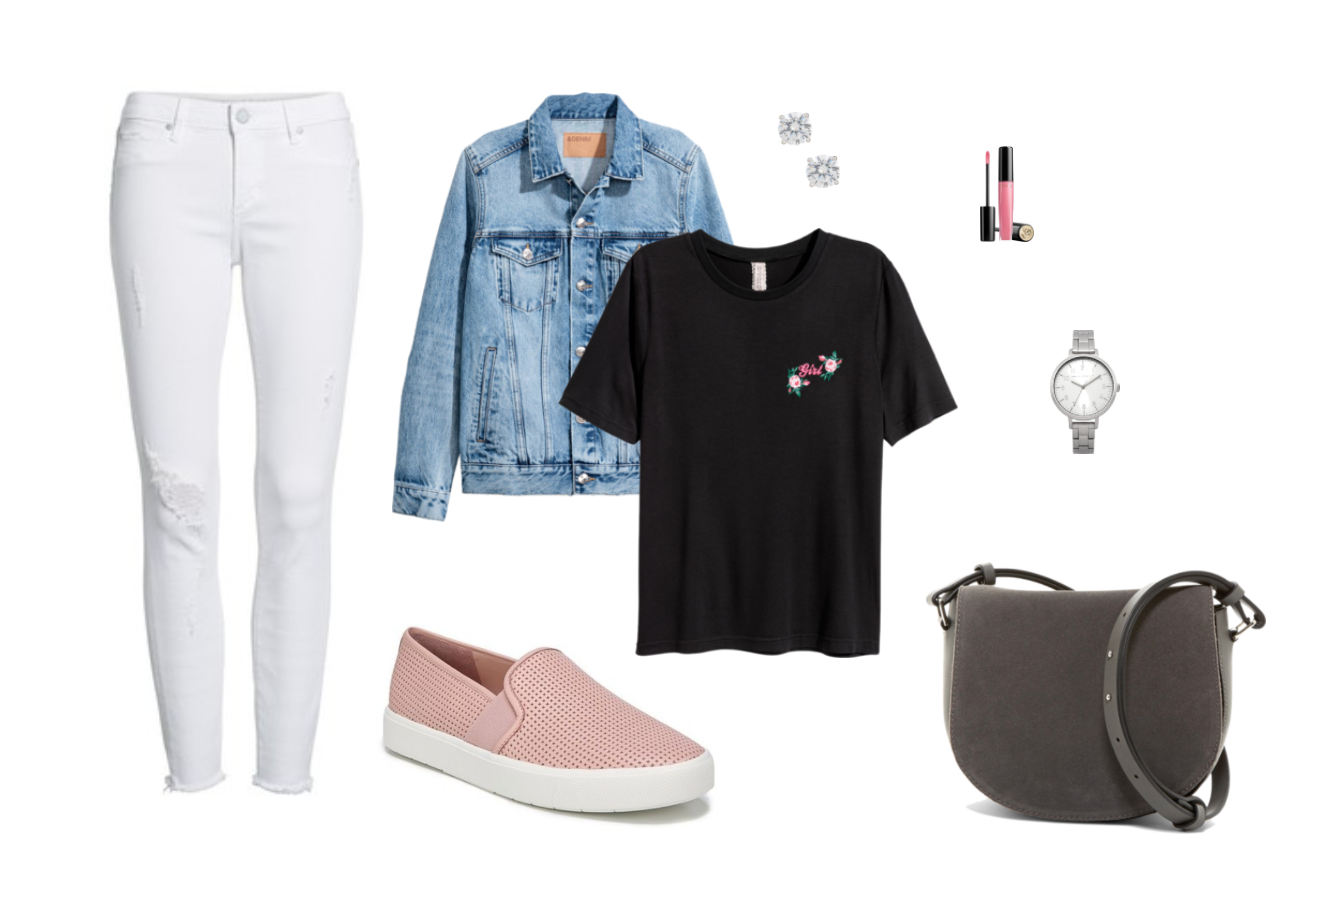 Slip-on sneakers outfit: Pink slip on